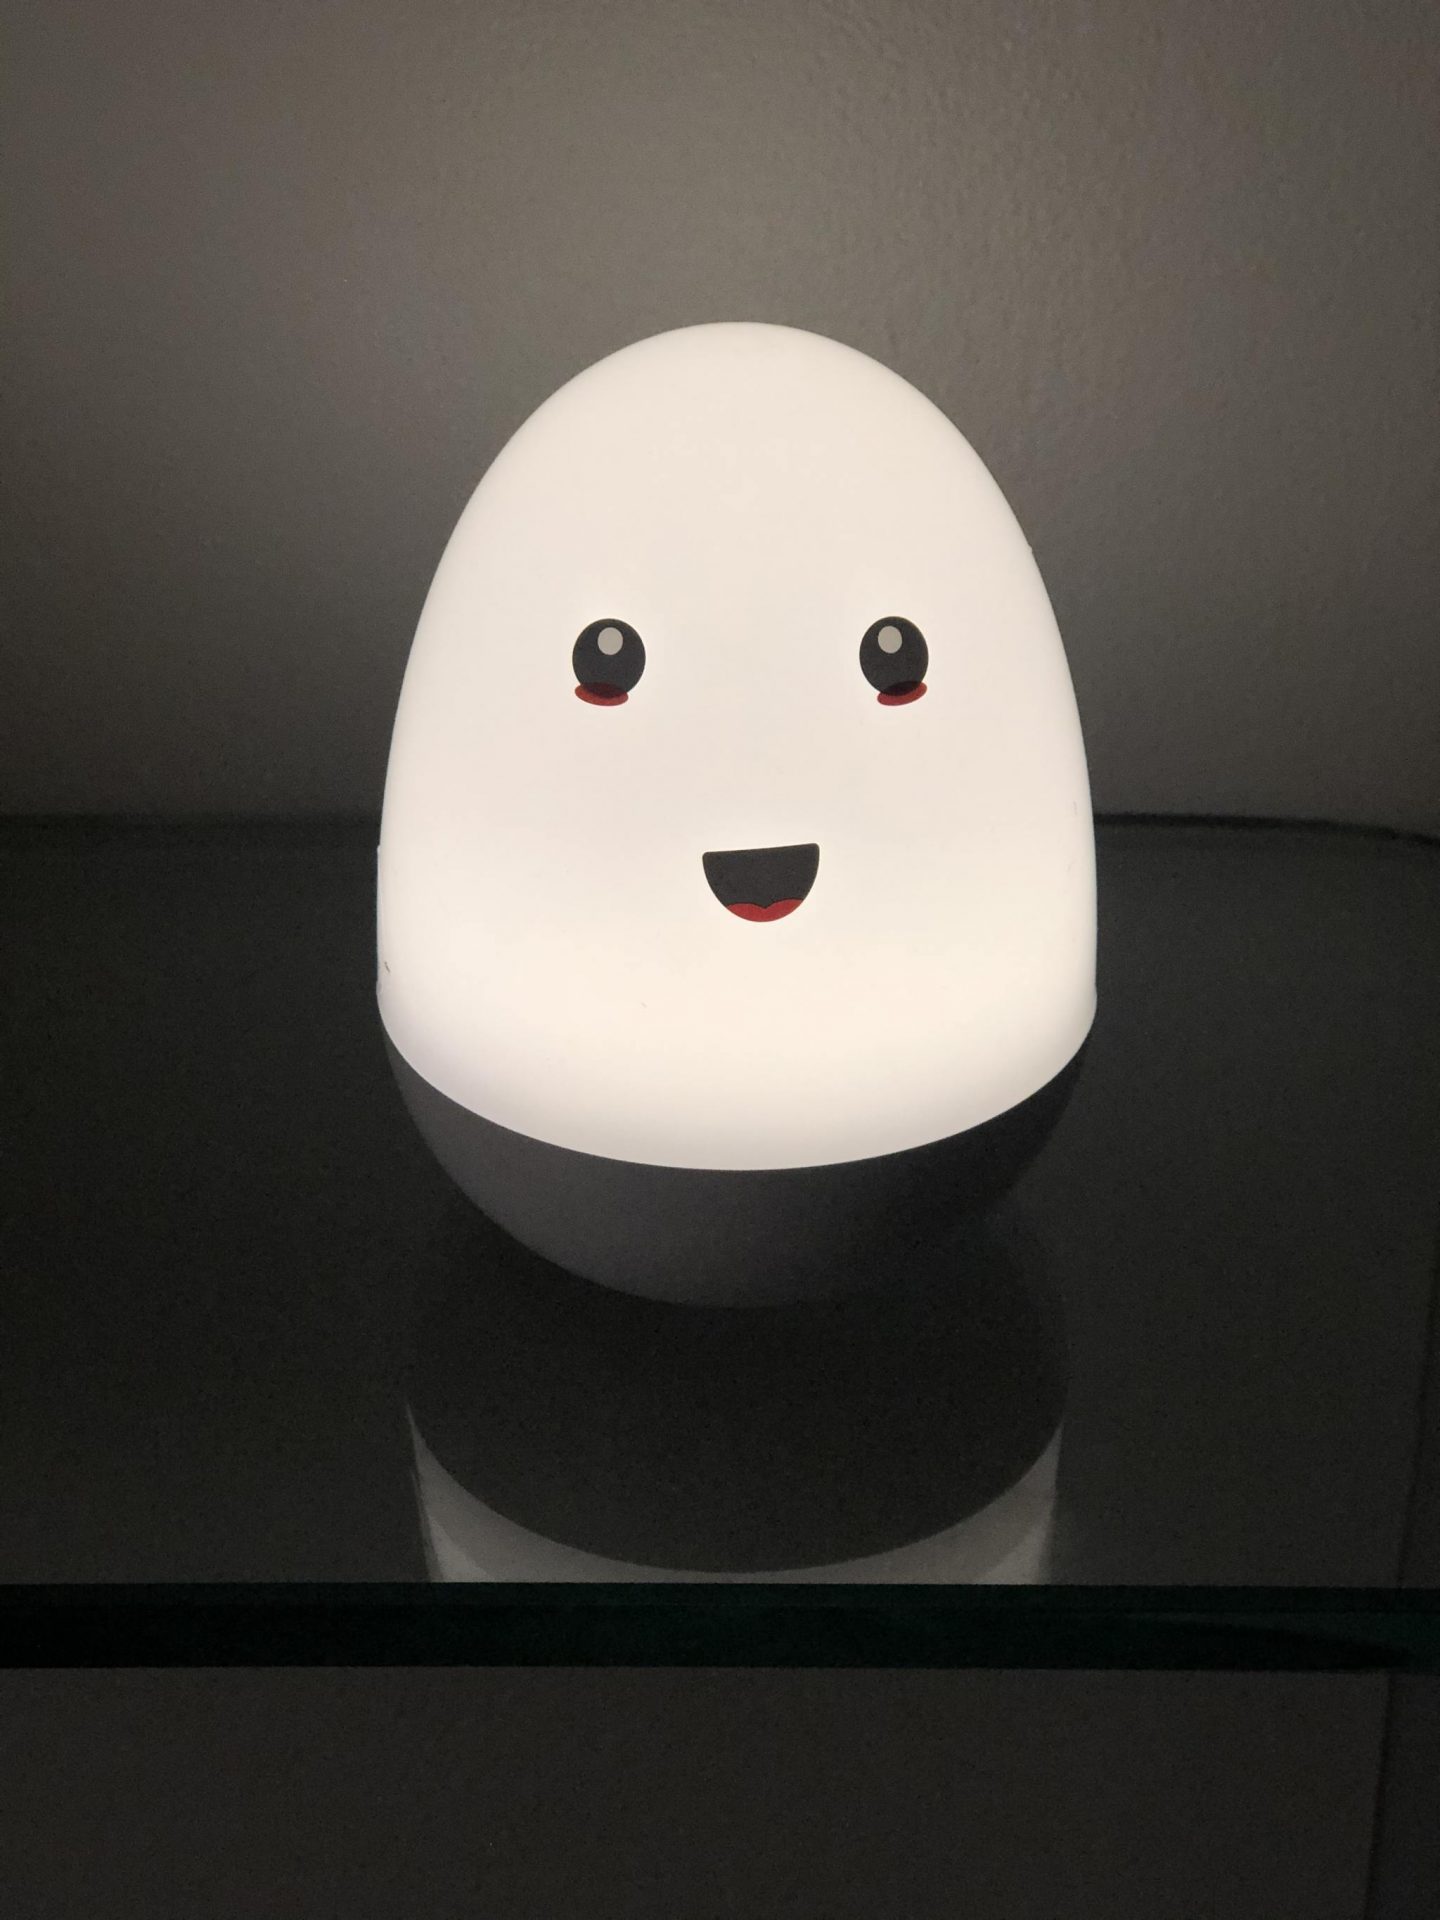 VAVA Dimmable Touch Night Light